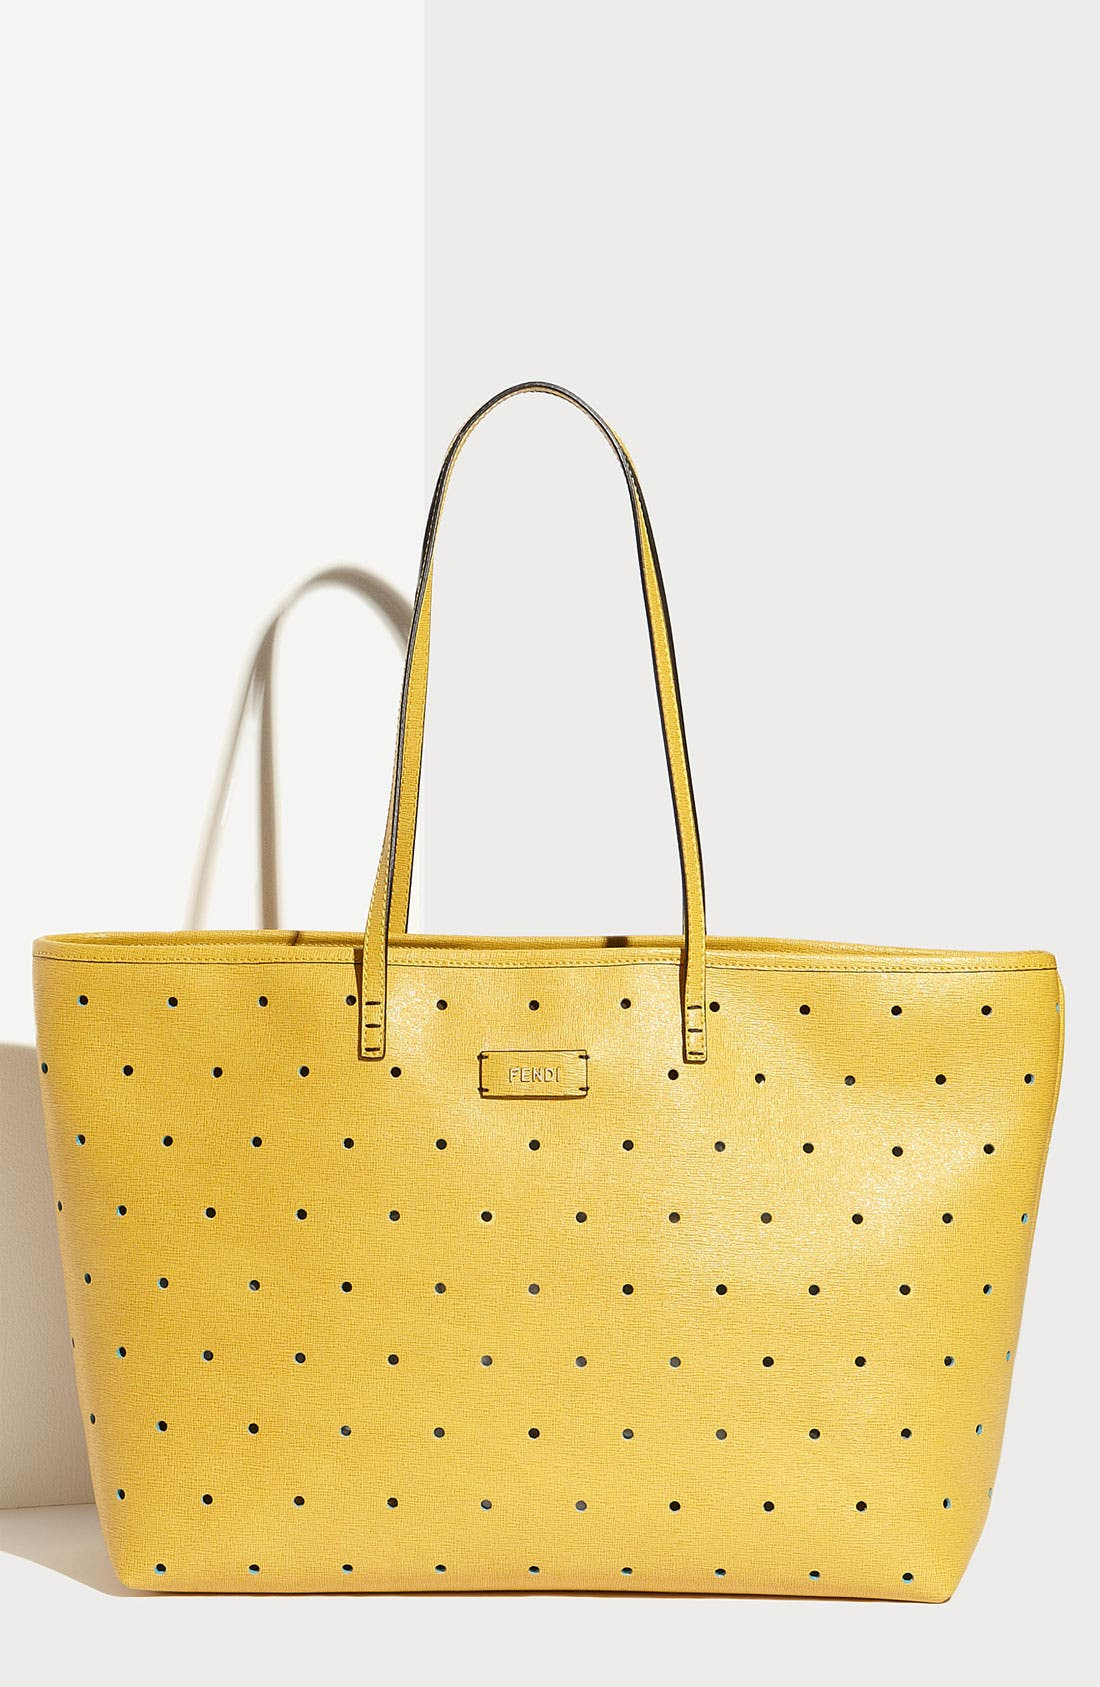 Alternate Image 1 Selected - Fendi 'Roll' Perforated Tote